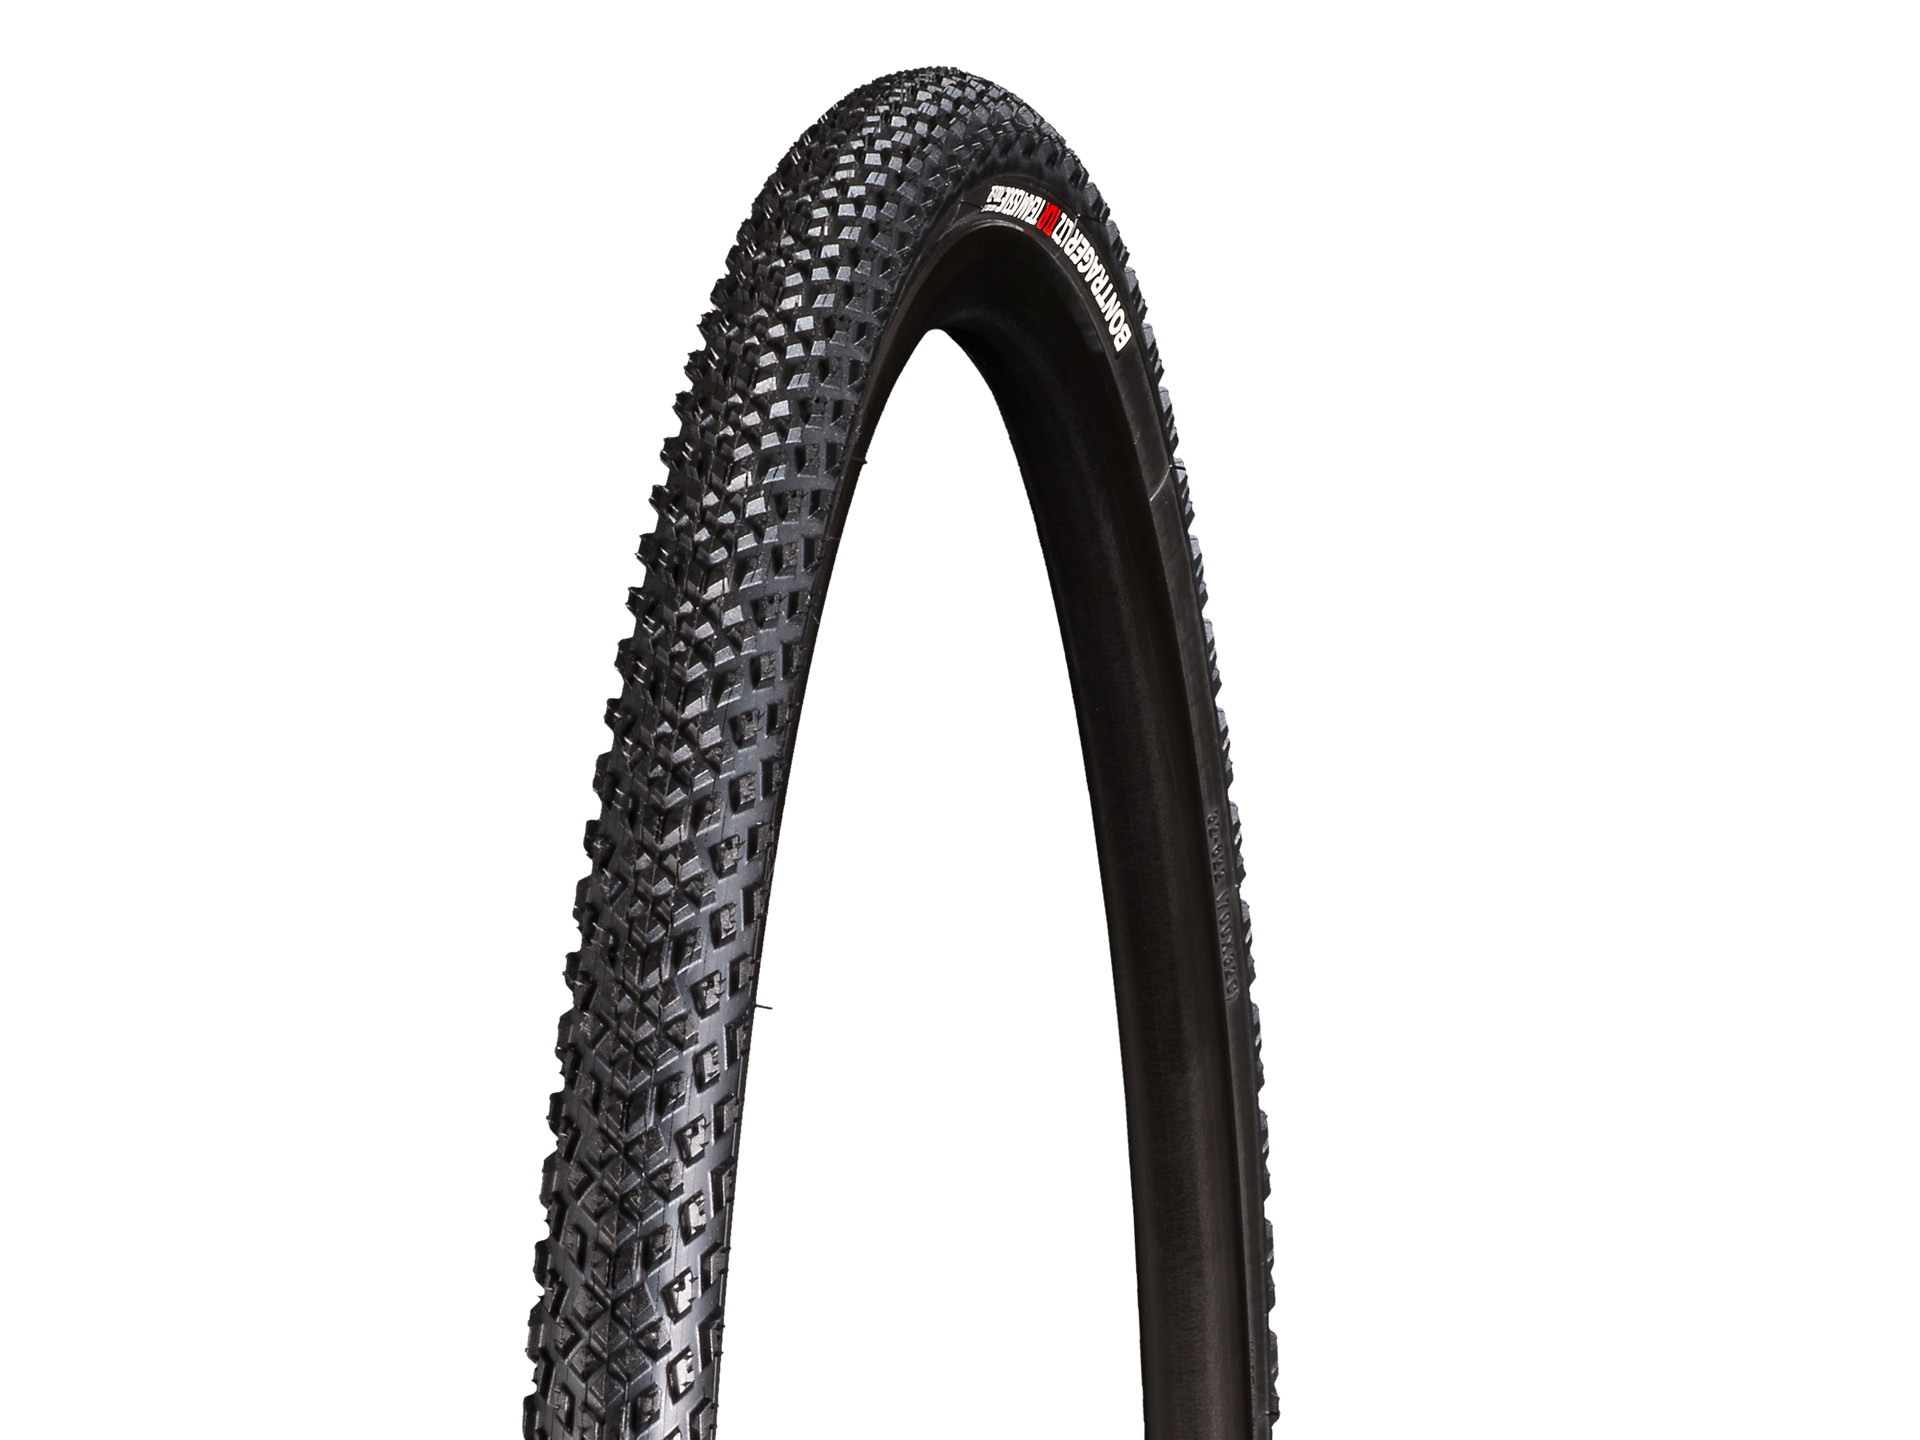 Panaracer 700 x 32c Urban Max Flat Protection Road Bike Tire Tour Hybrid Commutr